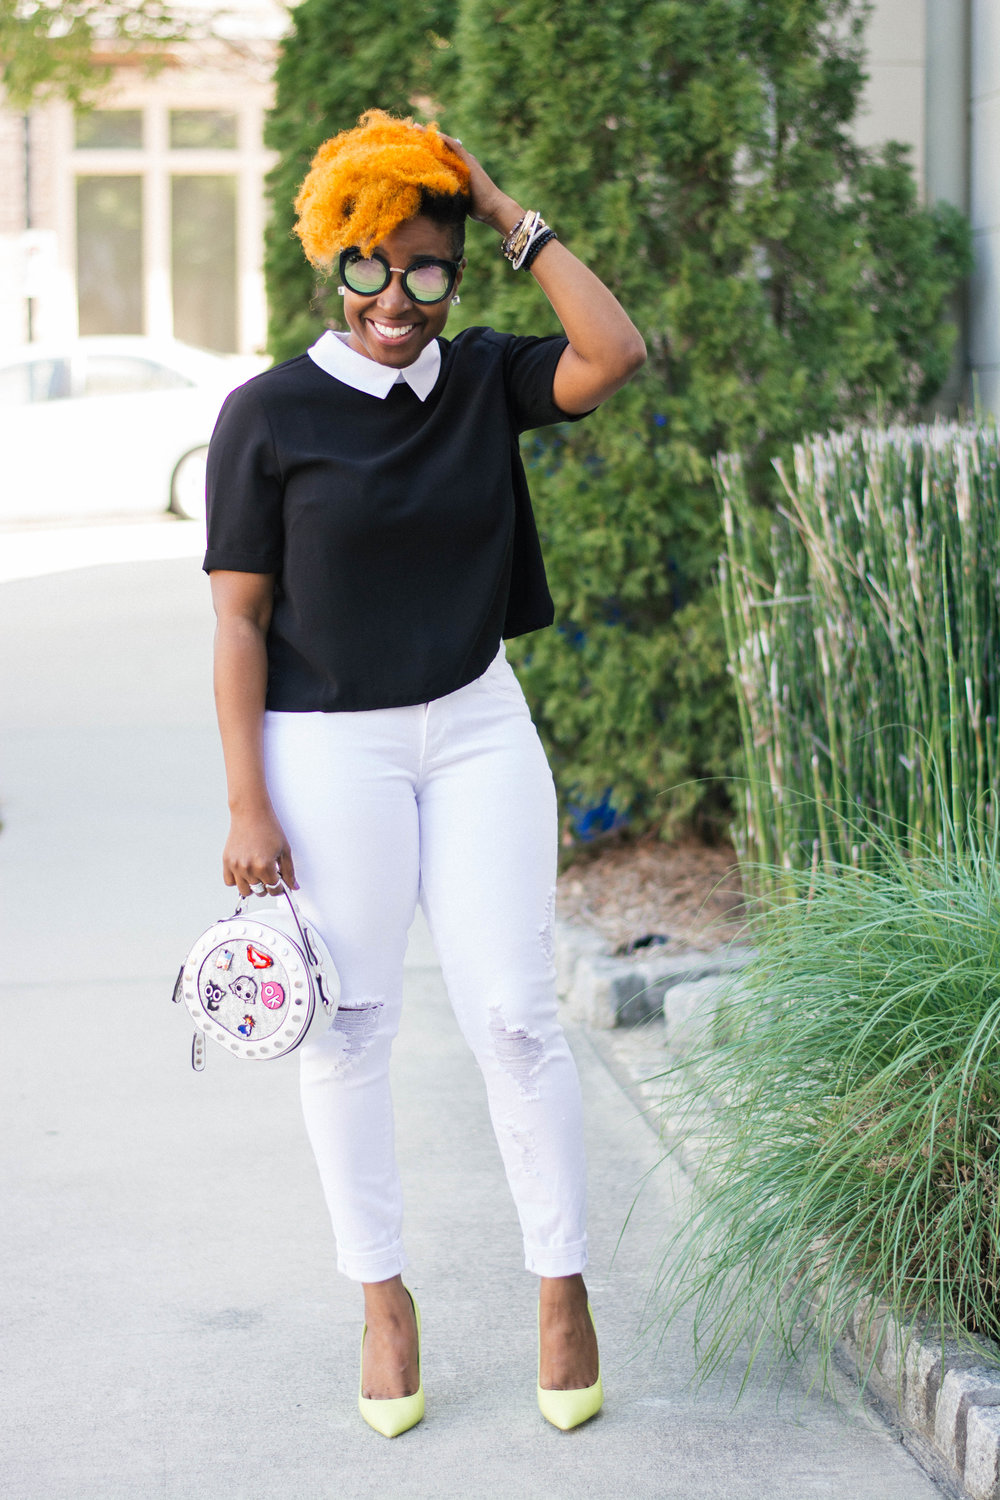 Melodie Stewart, The Style Klazit, Atlanta Style Blogger, Street Fashion, Black and White outfit